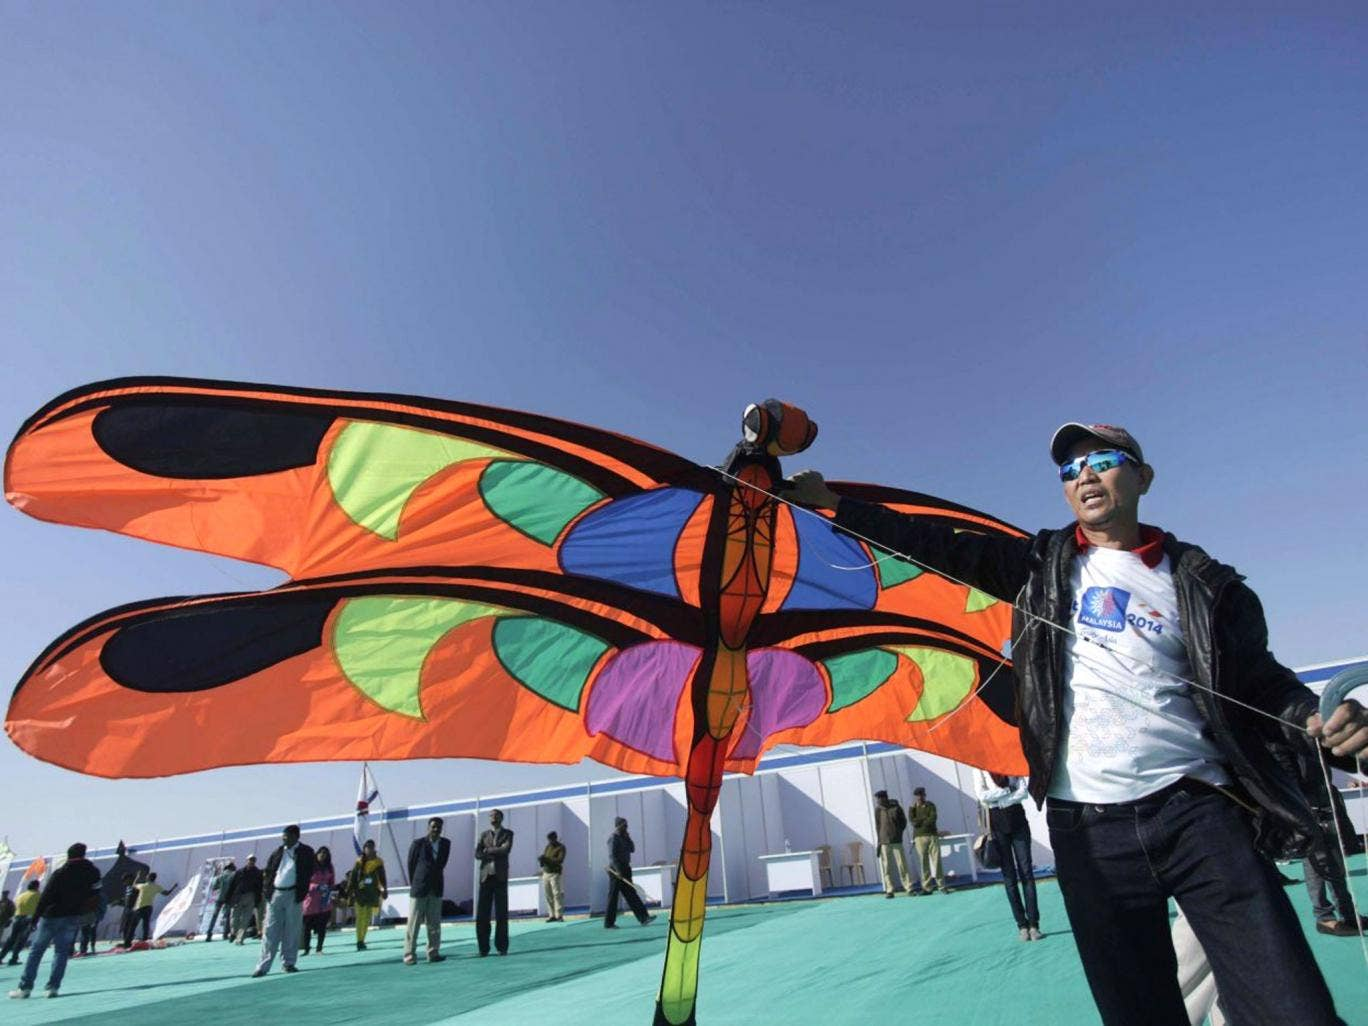 A man from Malaysia prepares to fly a kite during the International Kite Festival at white sand in the Rann of Kutch, a seasonal salt marsh located in the Thar Desert, in Dhordo, about 500 kilometers (311 miles) from Ahmadabad